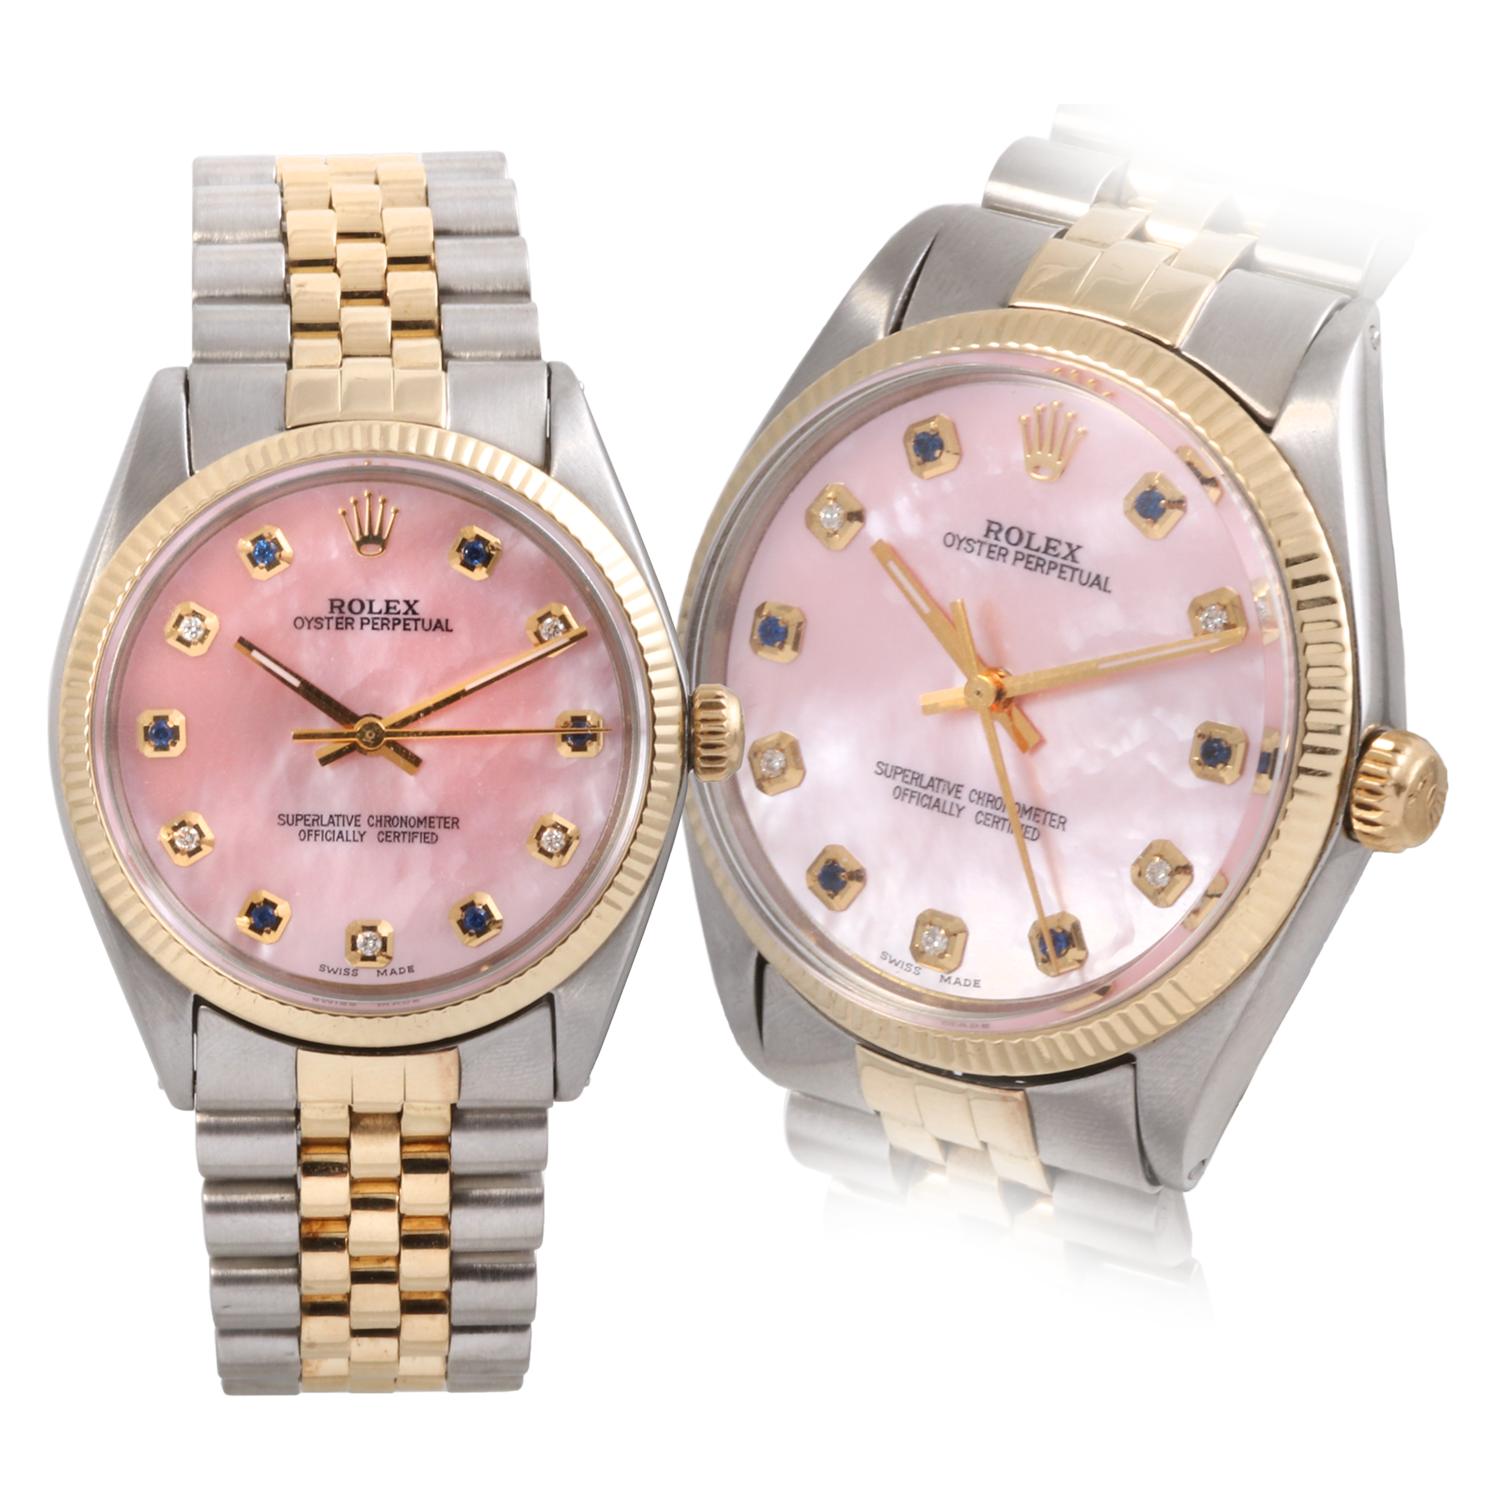 Rolex Two Tone 34mm Oyster Perpetual - Pink Mother of Pearl Alternating Sapphire & Diamond Dial - Fluted Bezel On A Jubilee Band